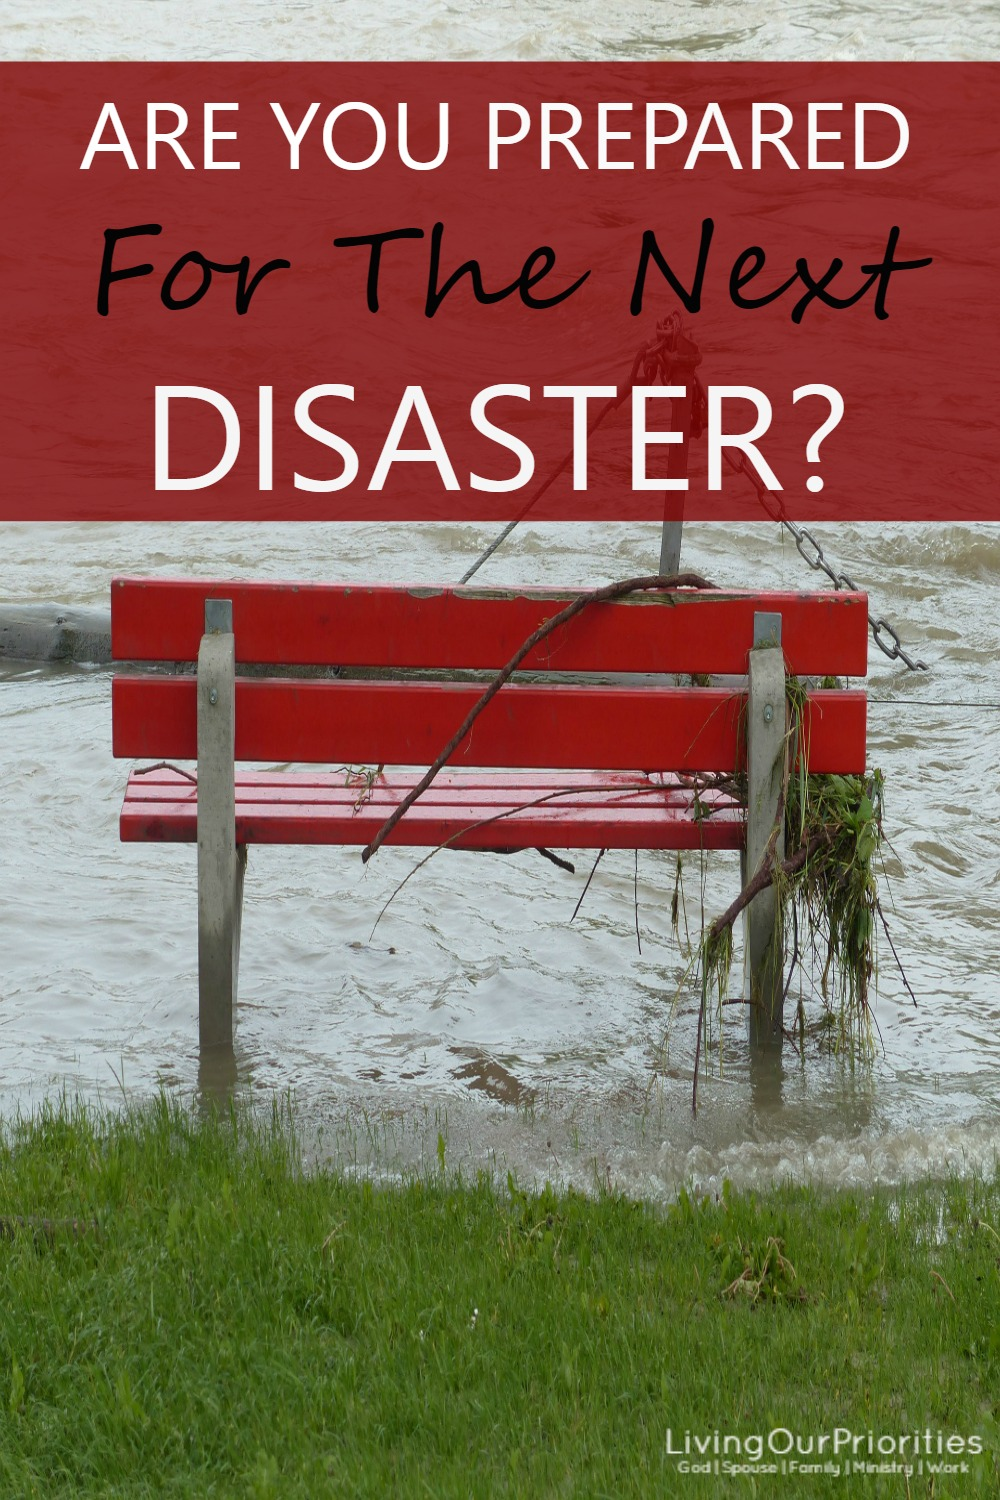 At some point we will face a disaster (natural or financial). The question is will you be prepared?